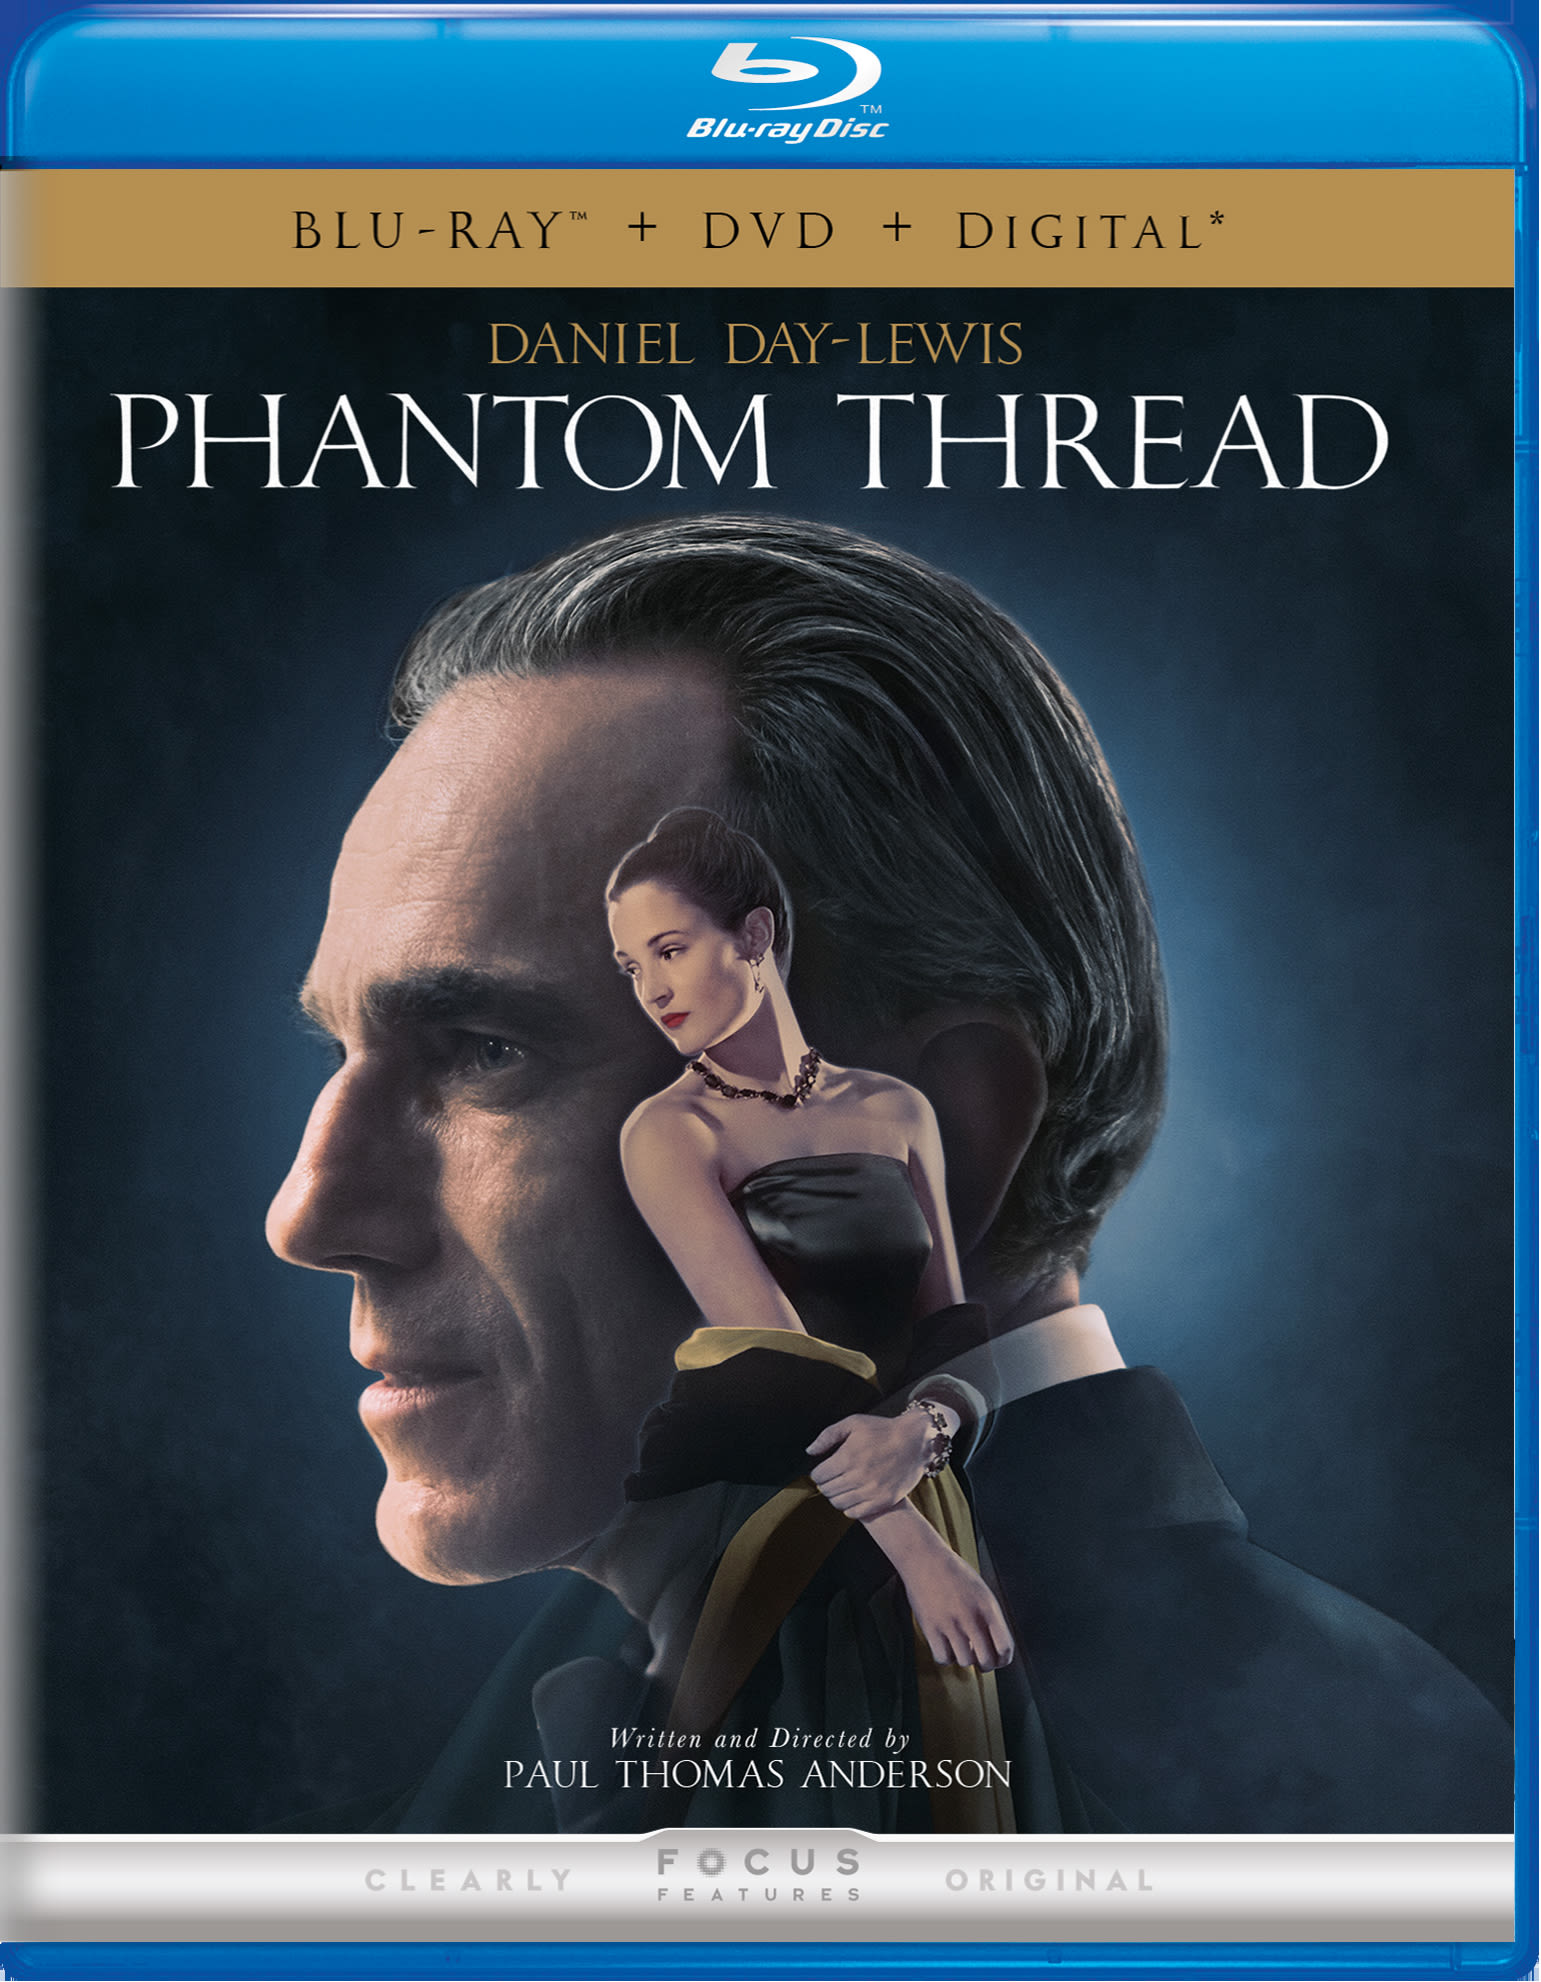 Phantom Thread (DVD + Digital) [Blu-ray]